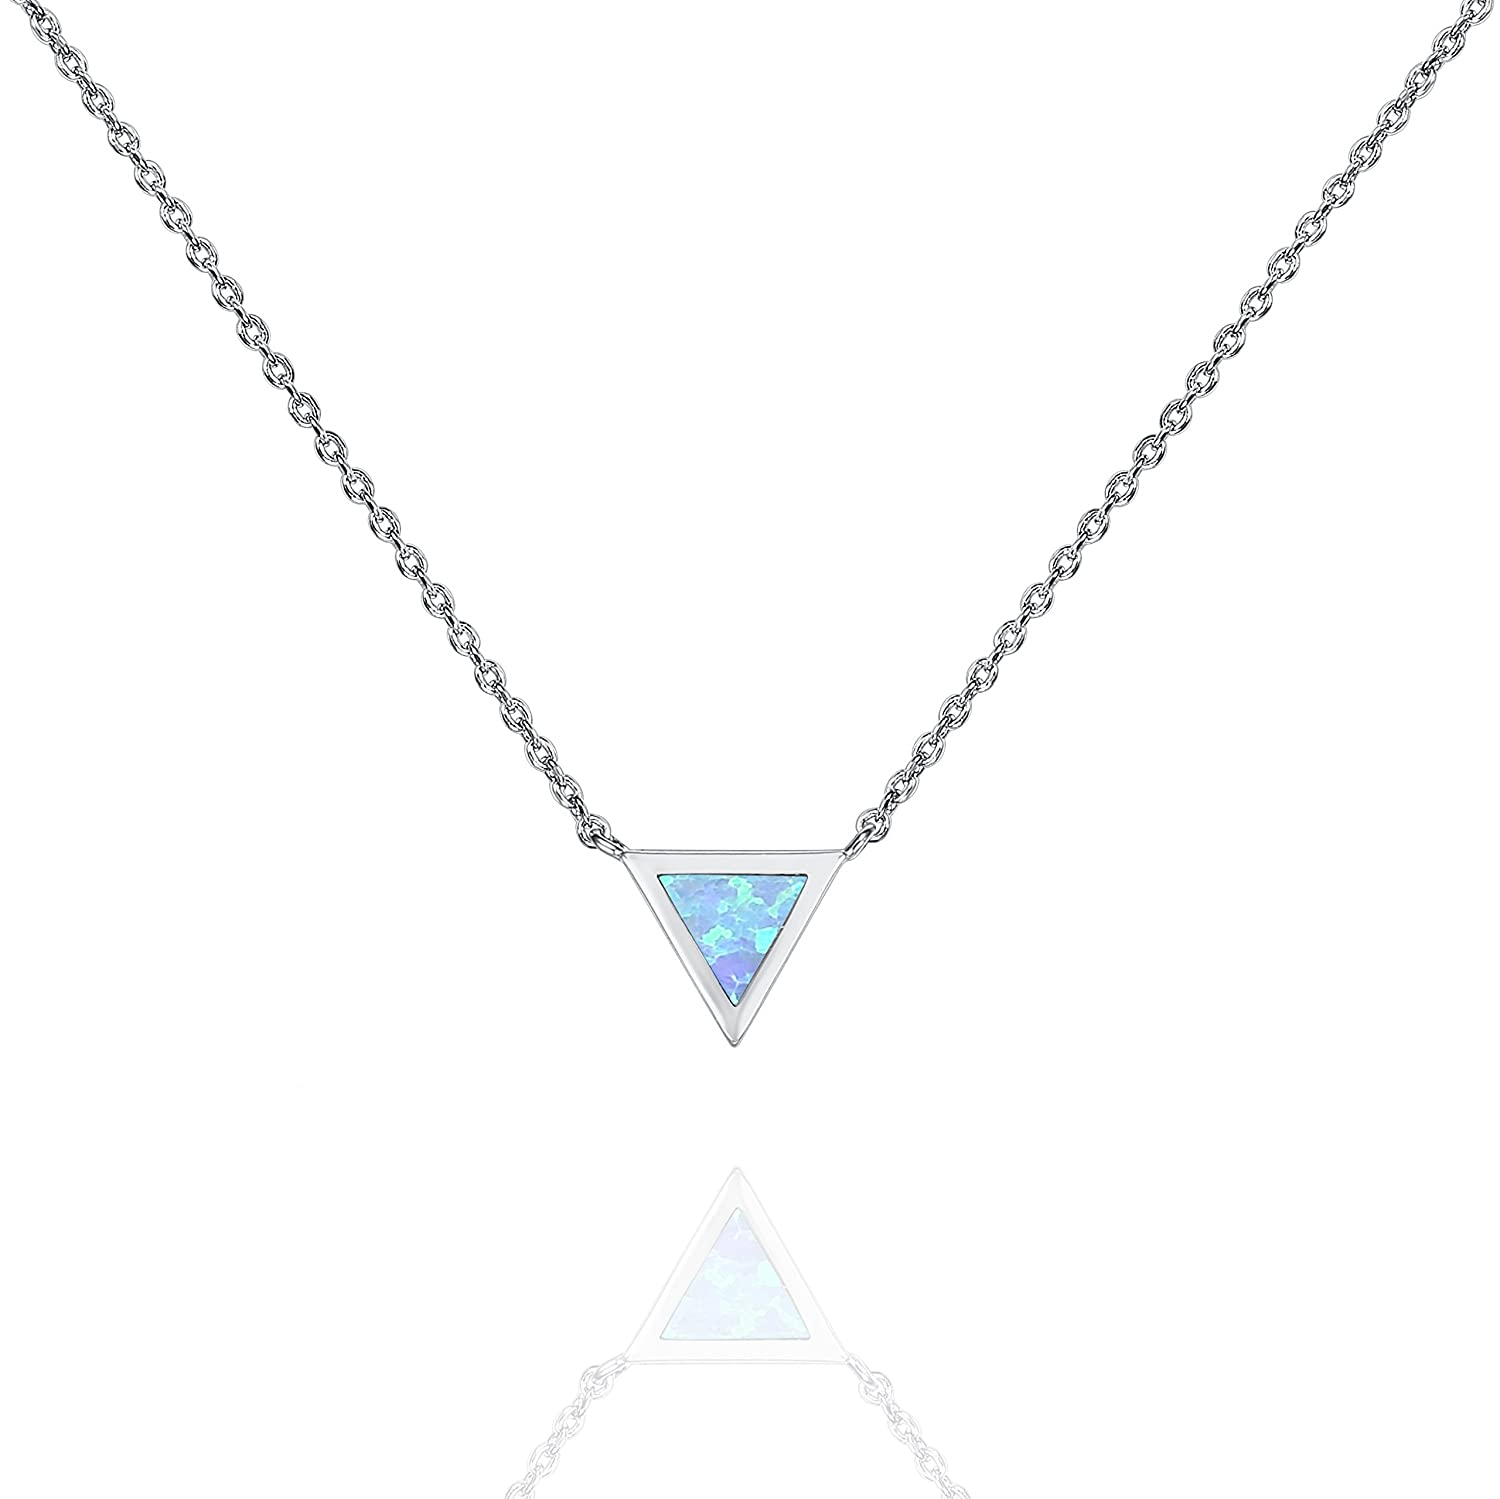 PAVOI 14K Gold Plated Triangle Bezel Set Pink/White/Green/Blue Created Opal Necklace 16-18 TC13-W